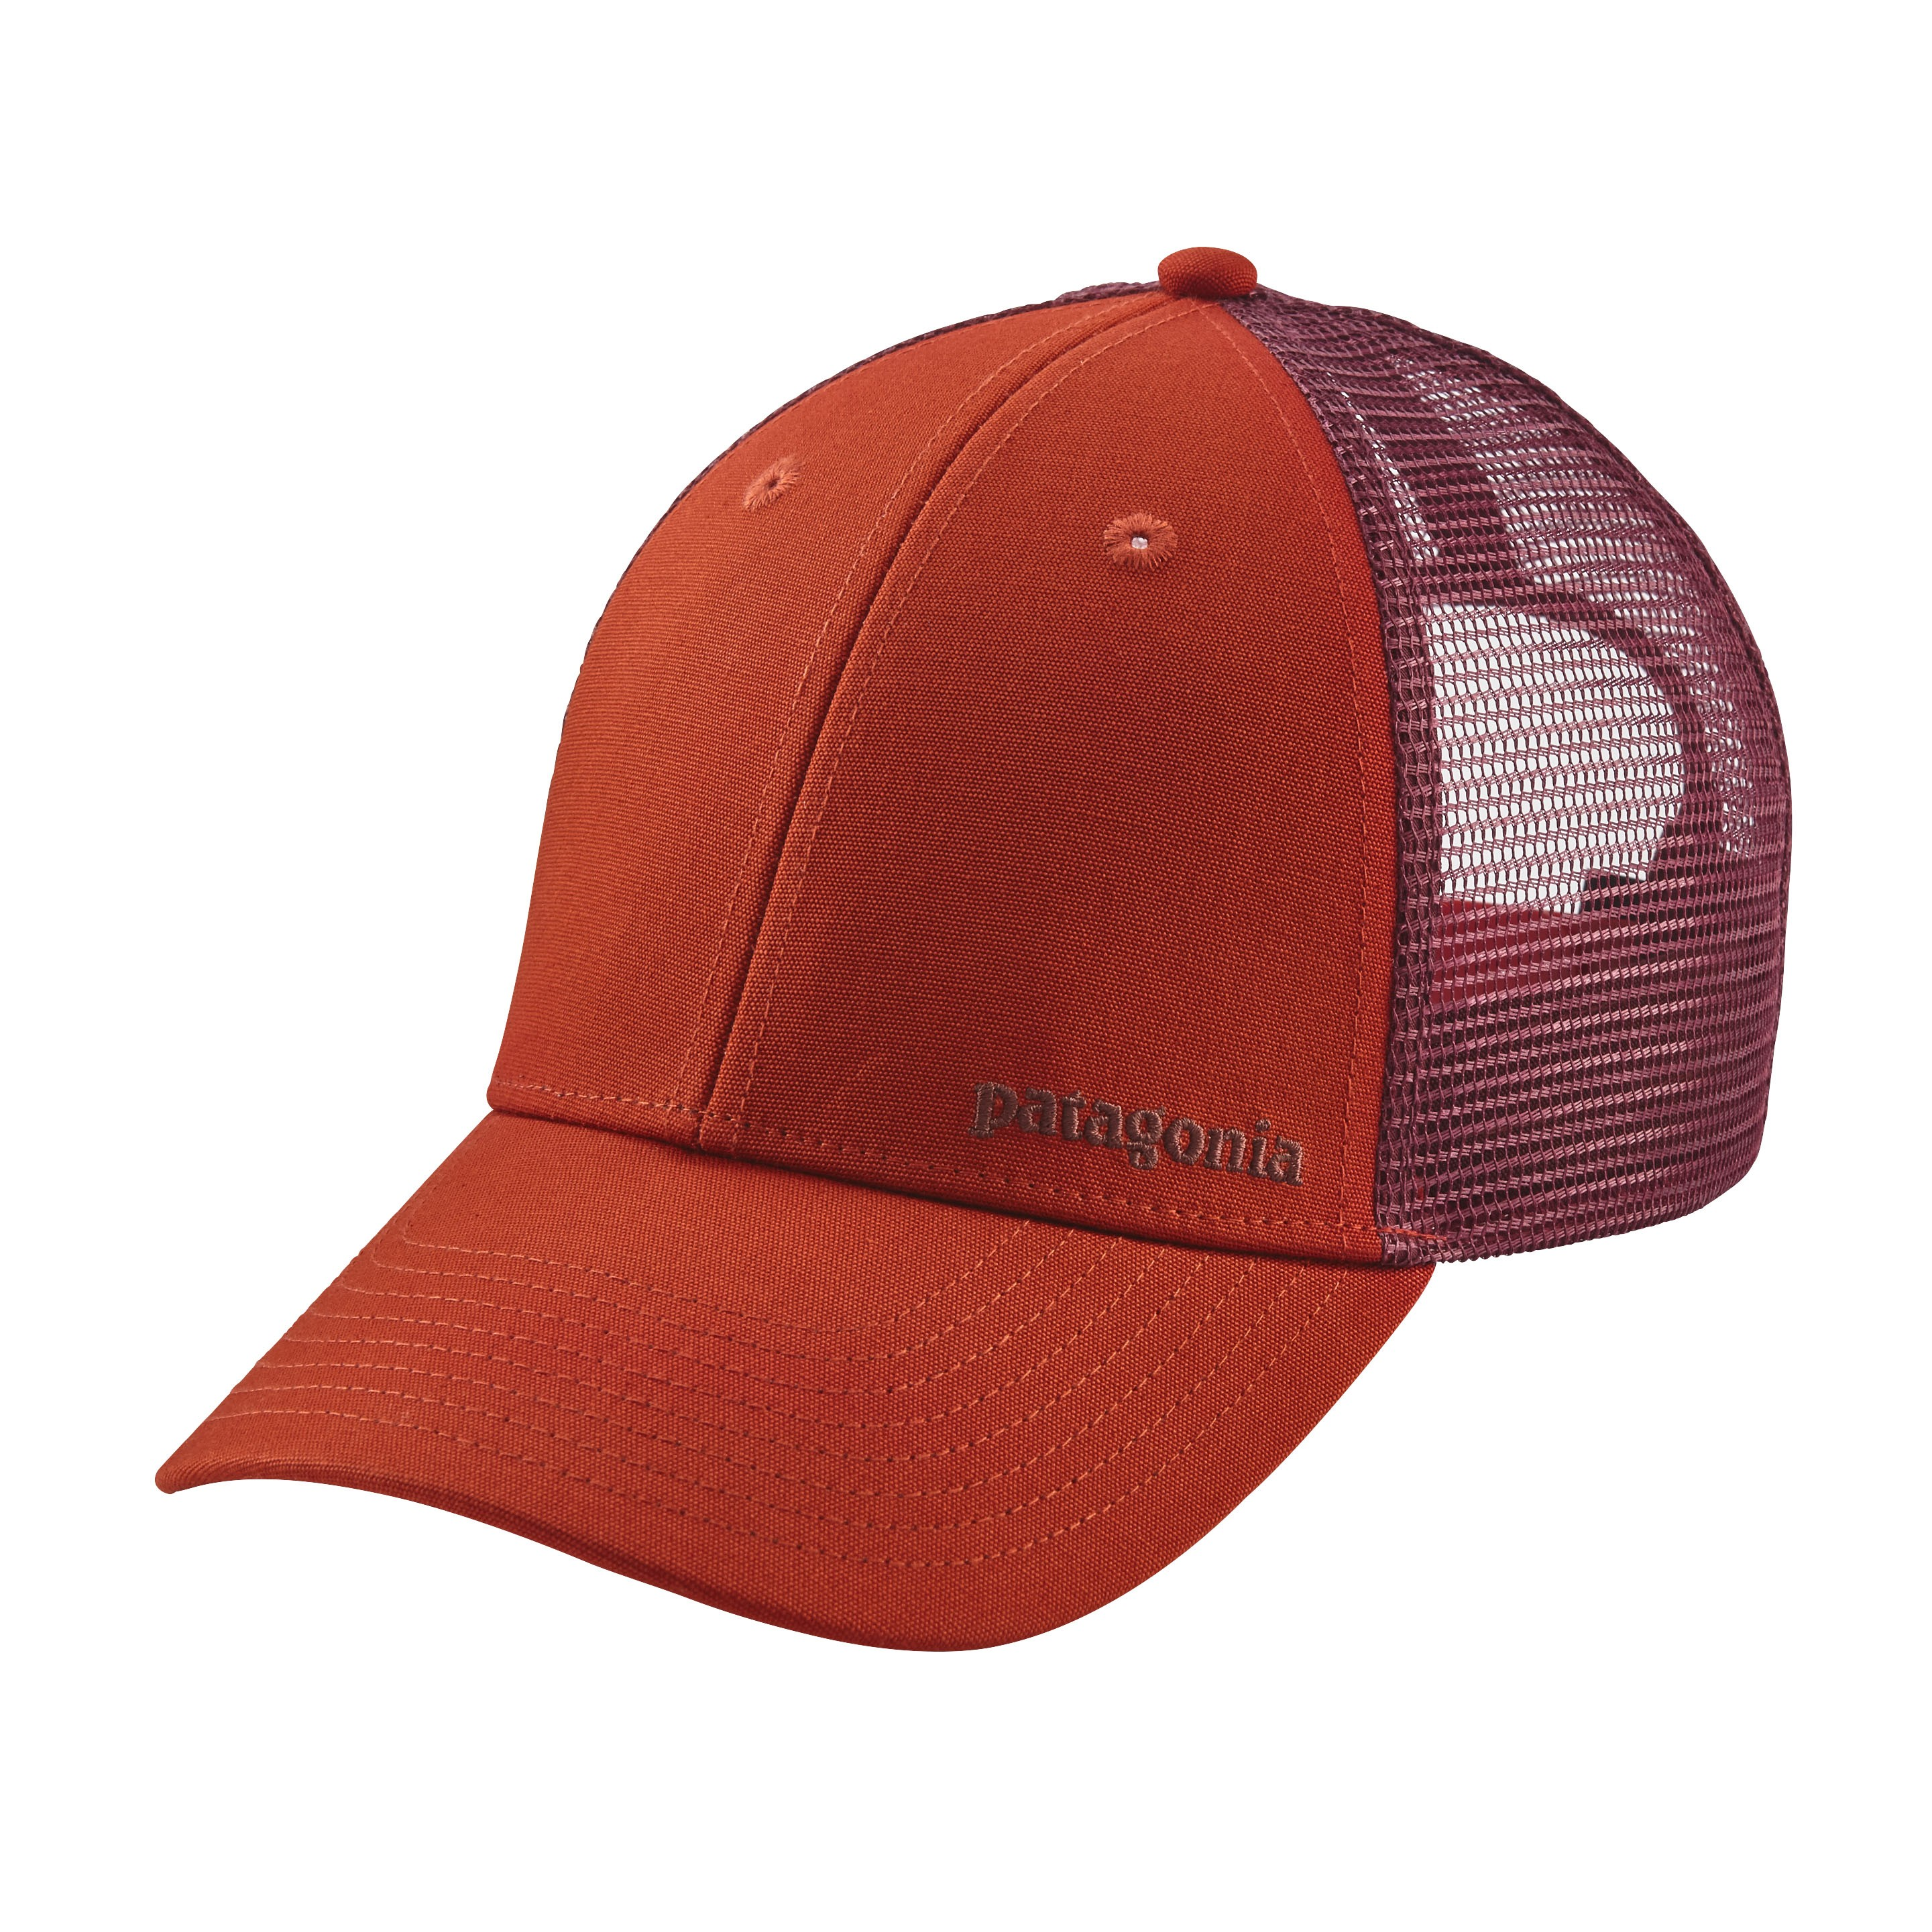 Patagonia Small Text Logo LoPro Trucker Hat : Roots Red